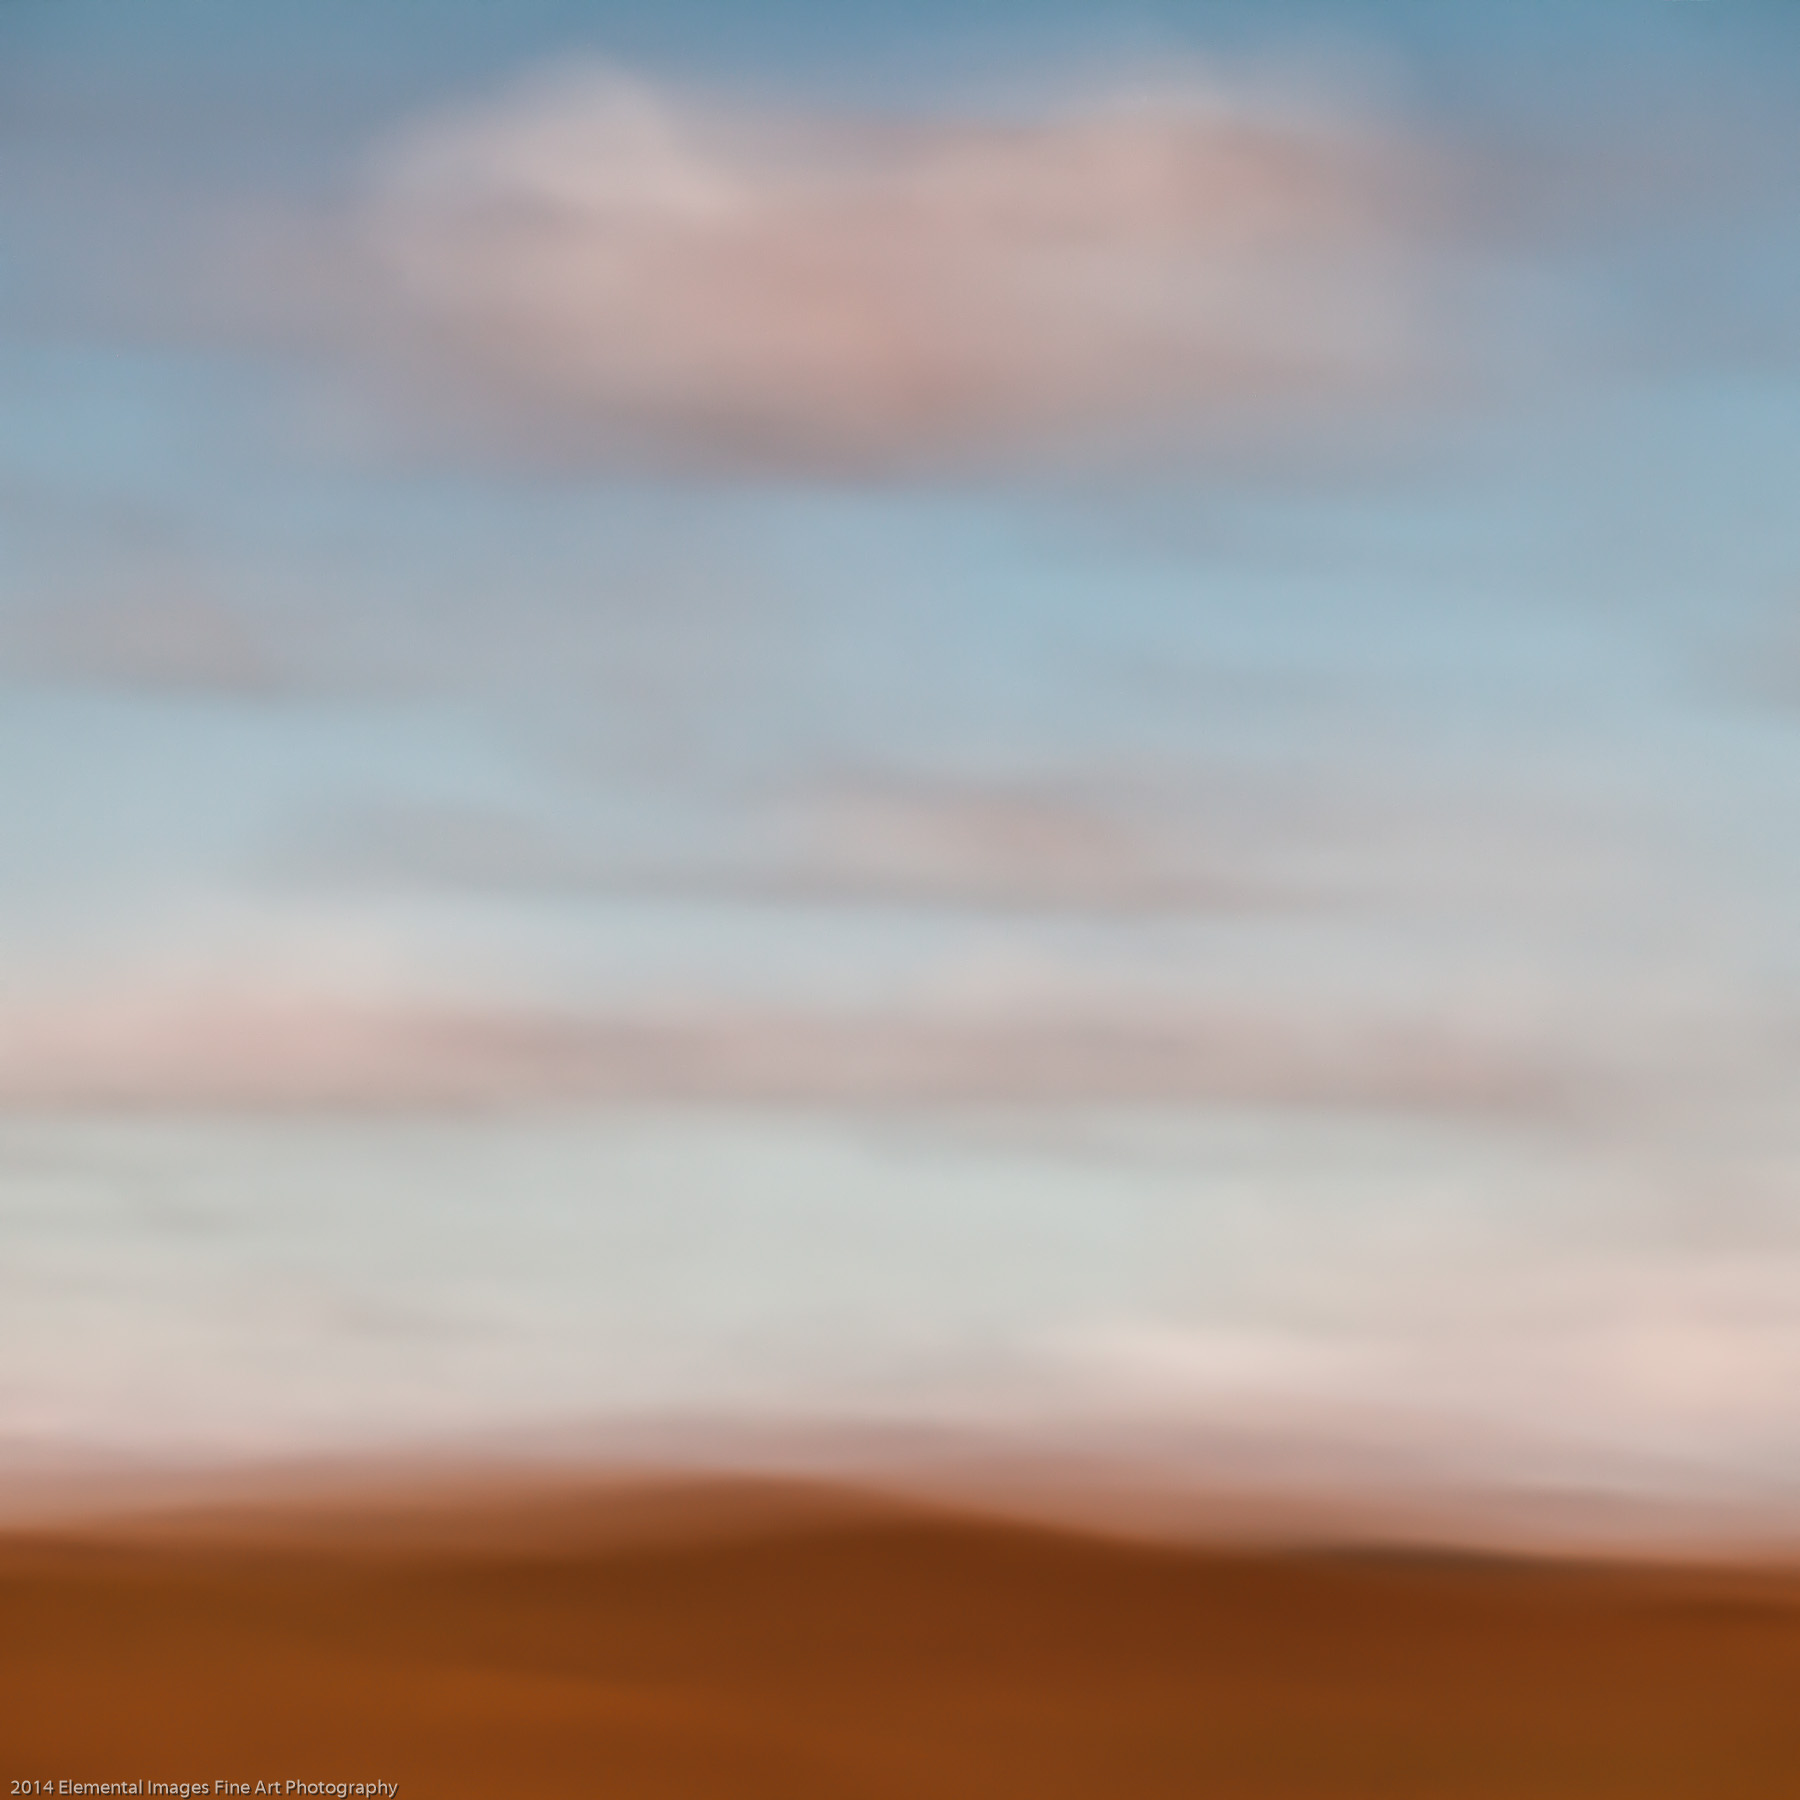 Palouse XLVII | The Palouse | WA | USA - © 2014 Elemental Images Fine Art Photography - All Rights Reserved Worldwide